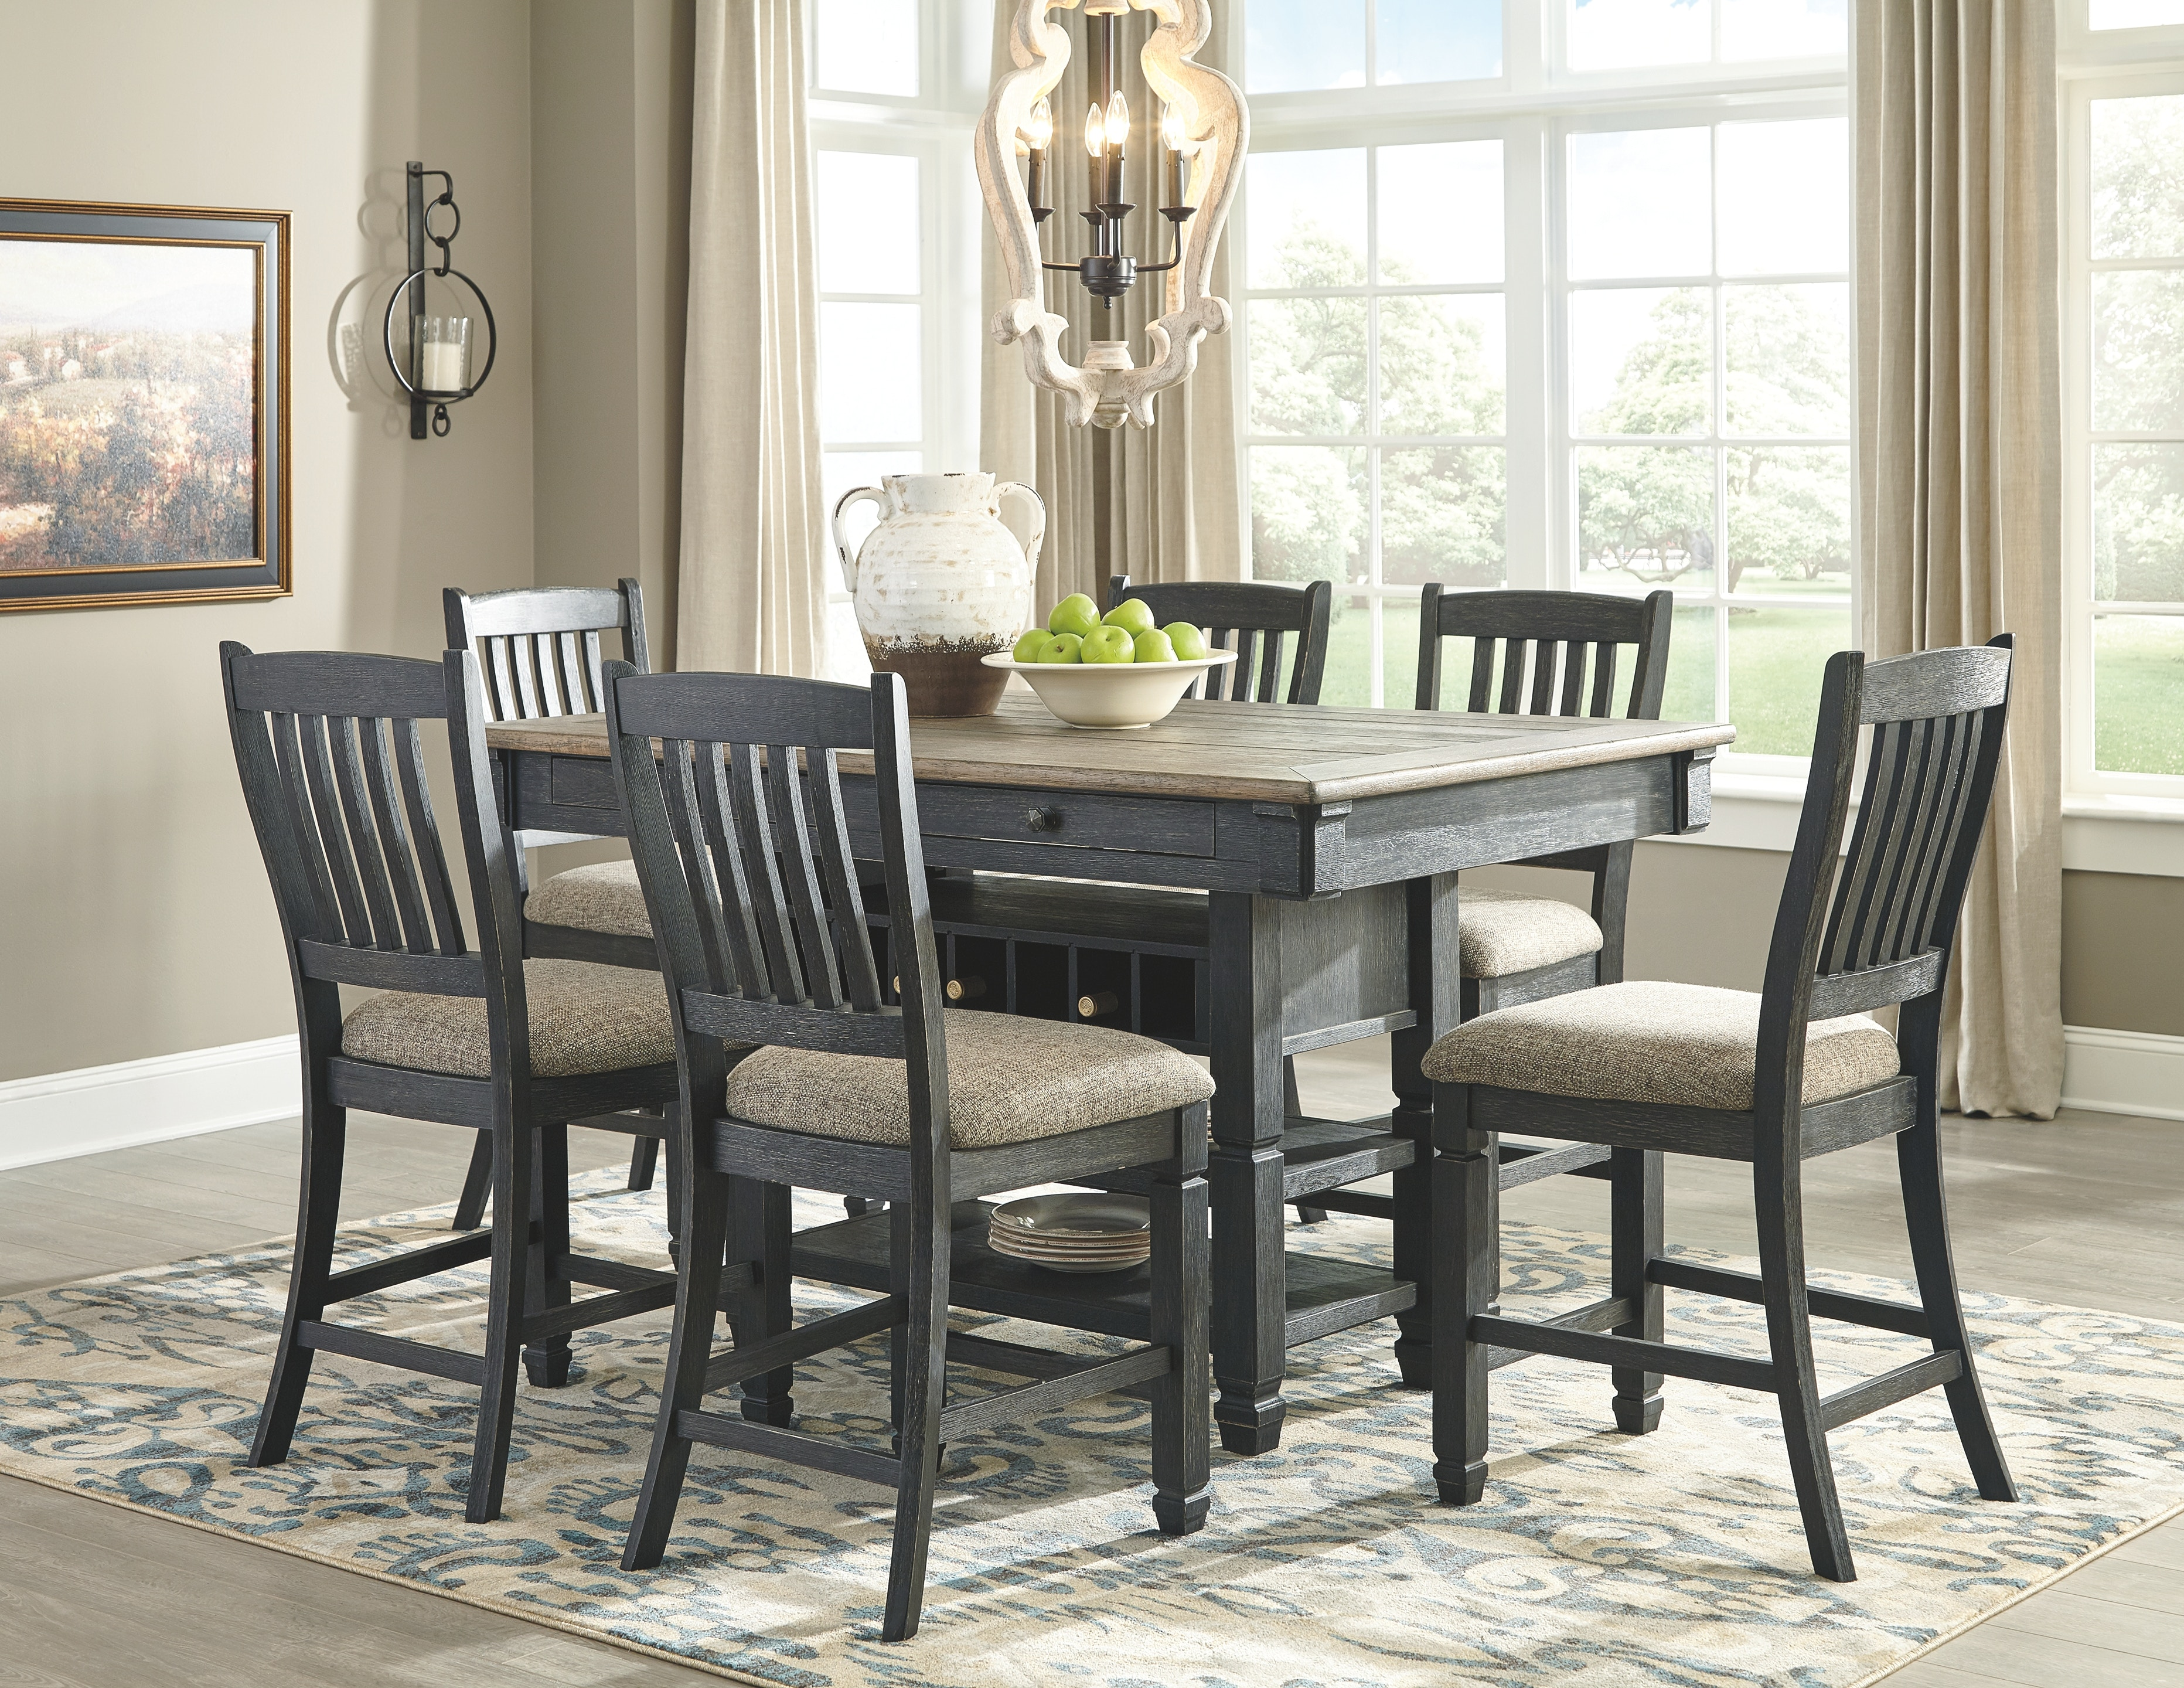 Tyler Furniture Stores